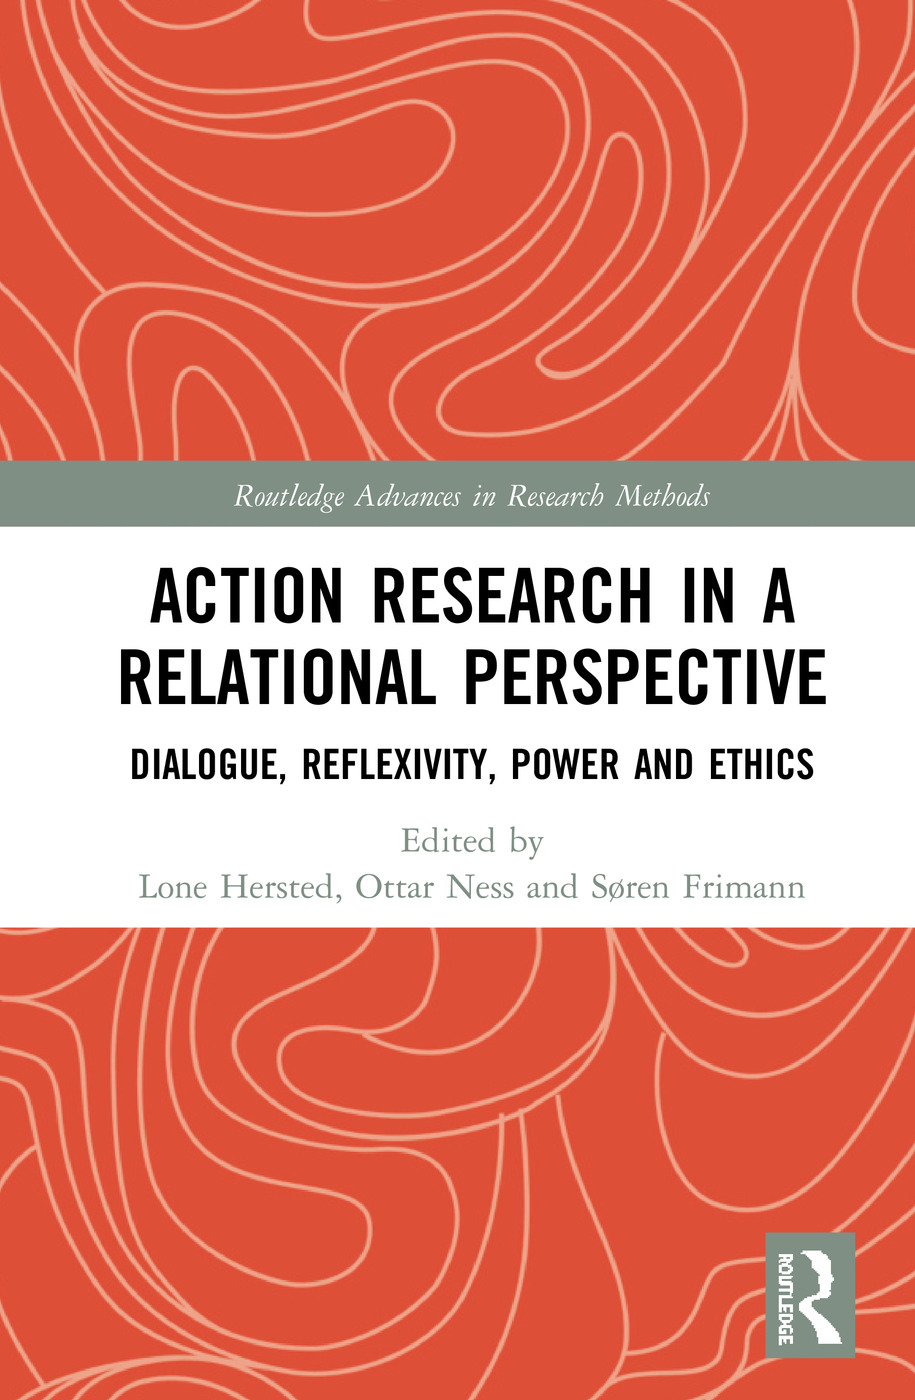 Action Research in a Relational Perspective: Dialogue, Reflexivity, Power and Ethics book cover